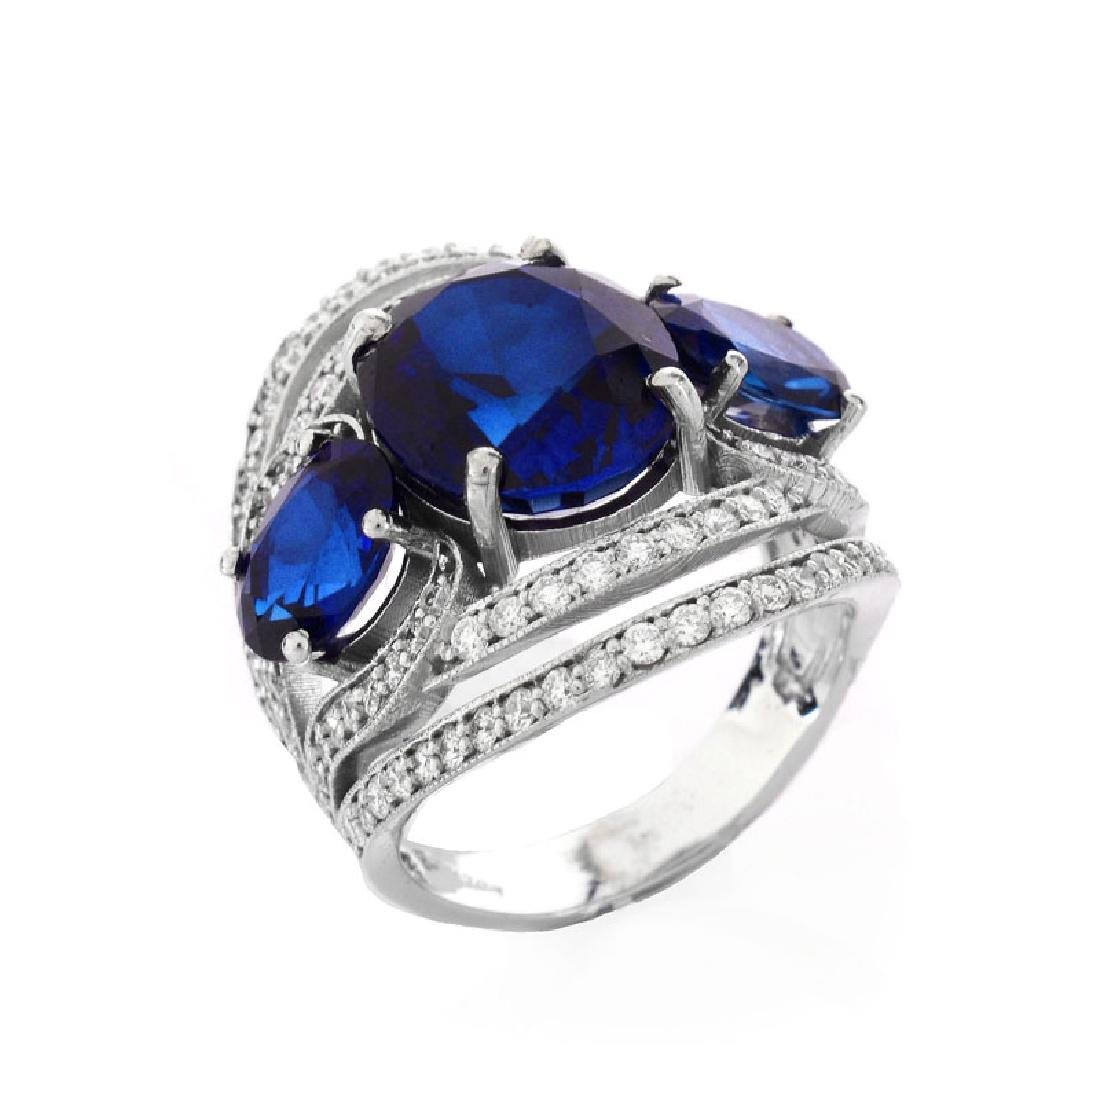 Approx. 10.30 Carat Oval Cut Synthetic Sapphire, 1.20